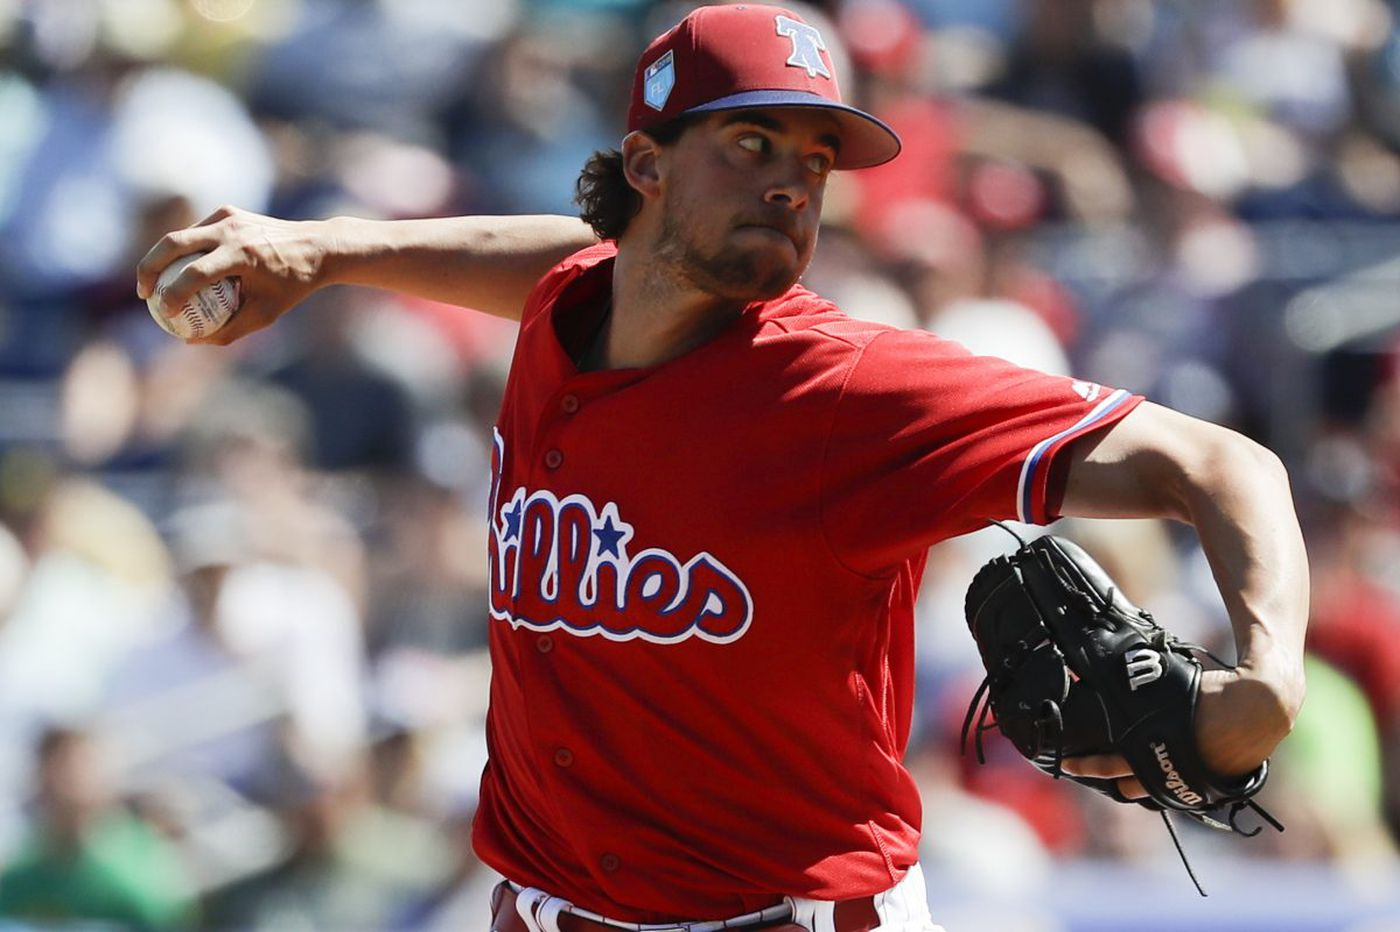 Aaron Nola will be Phillies' youngest opening day starter since 1964